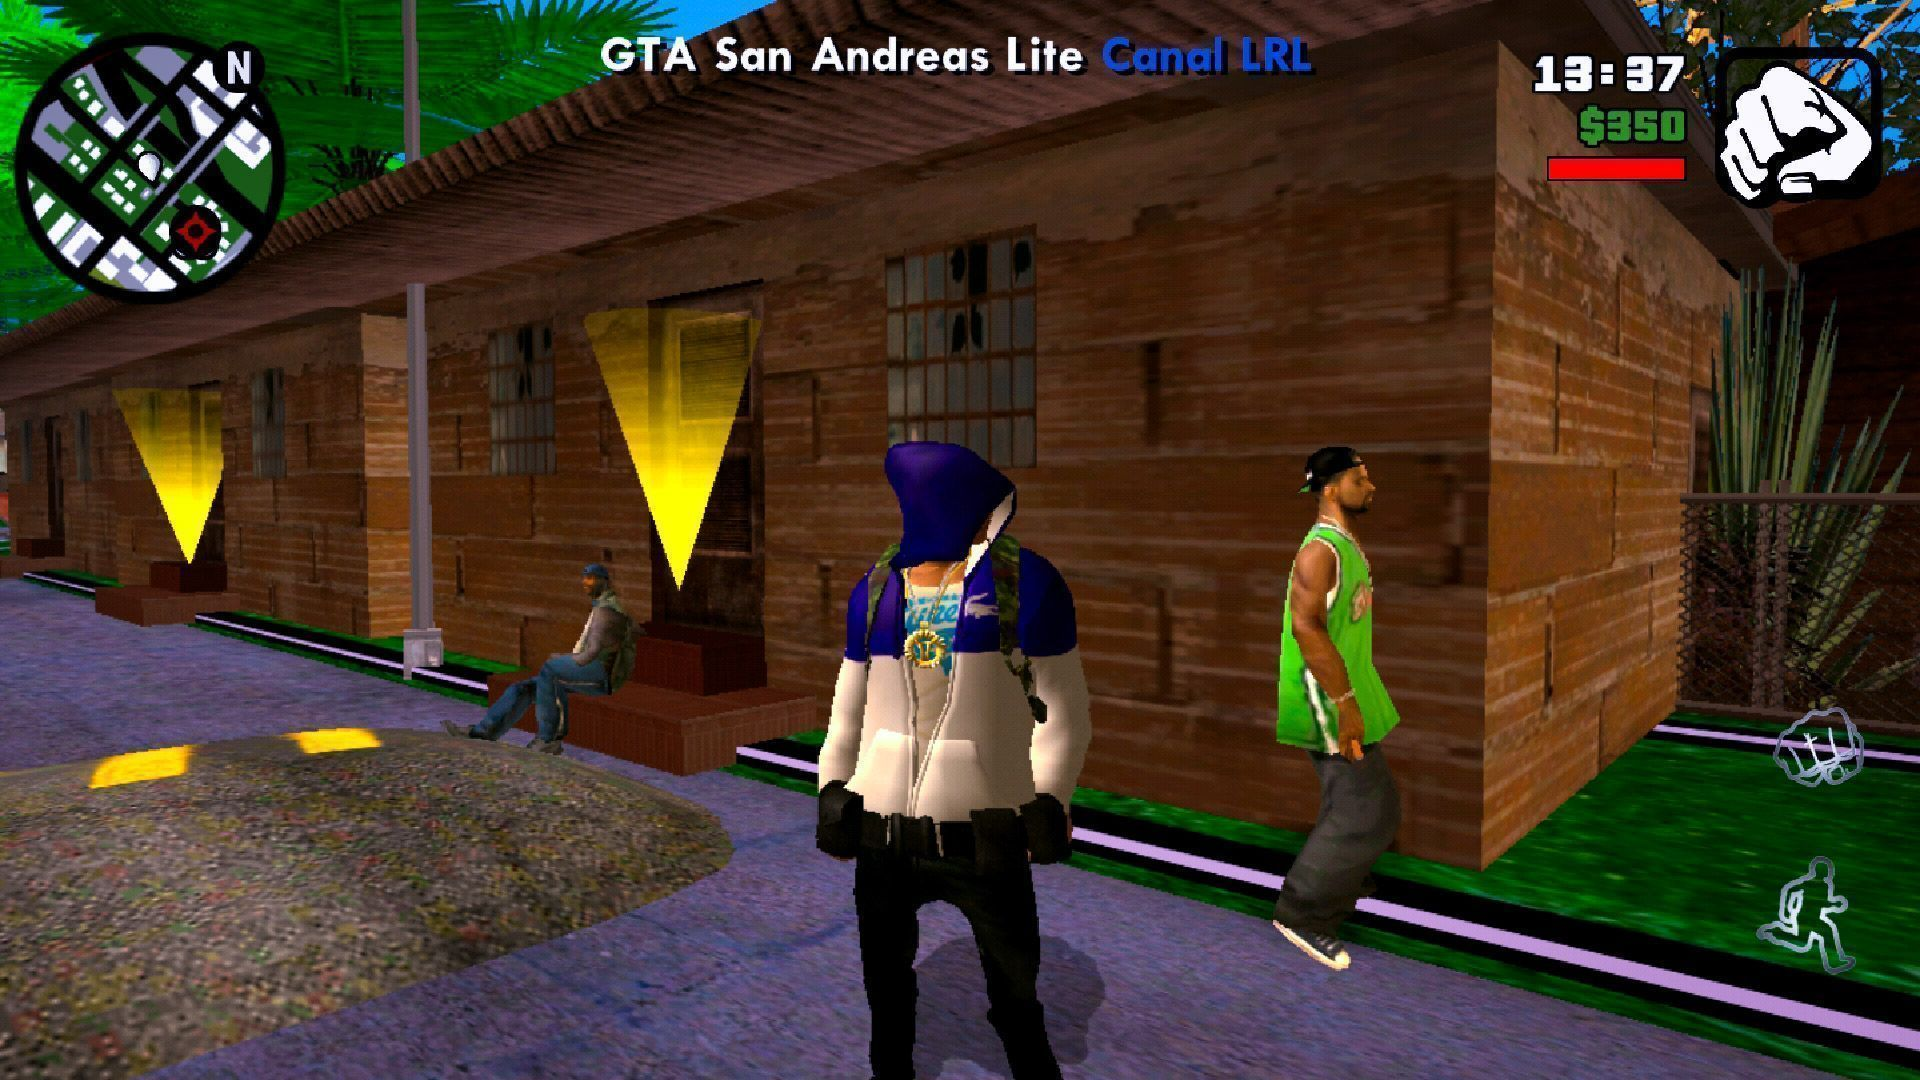 PSX 20190516 091923 - GTA Modificado para Android (565MB) apk+data